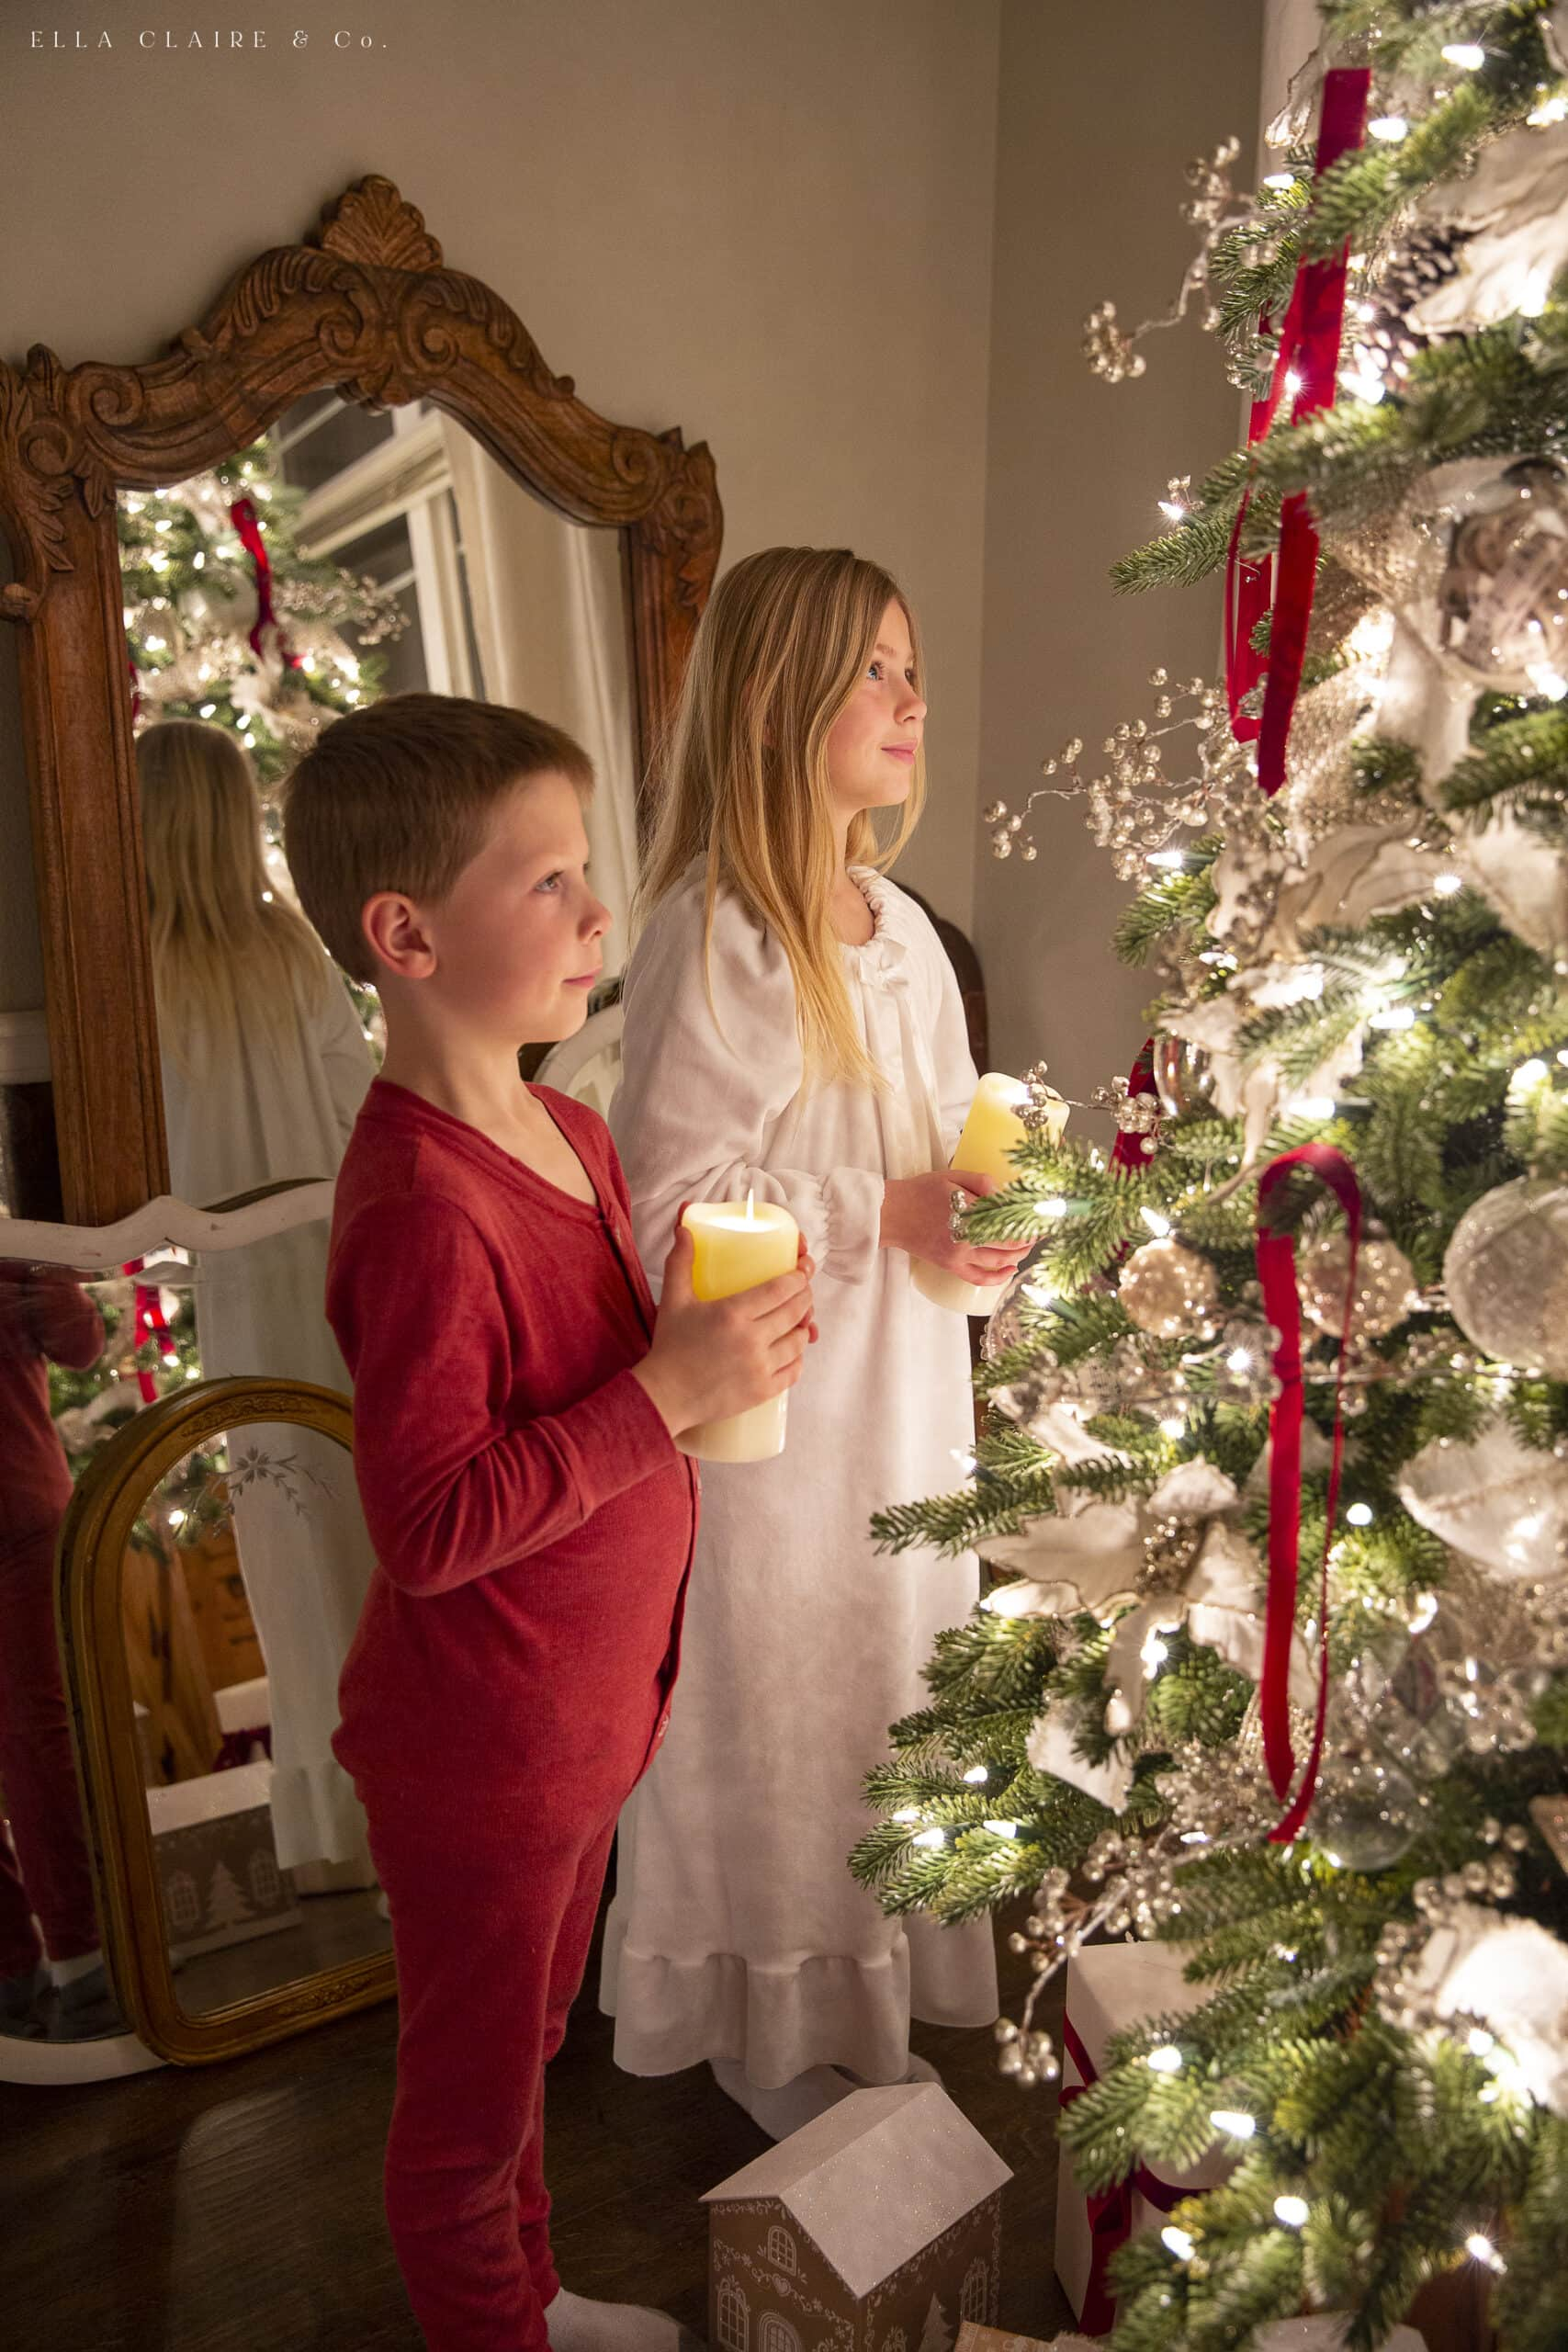 children holding candles and looking at Christmas tree